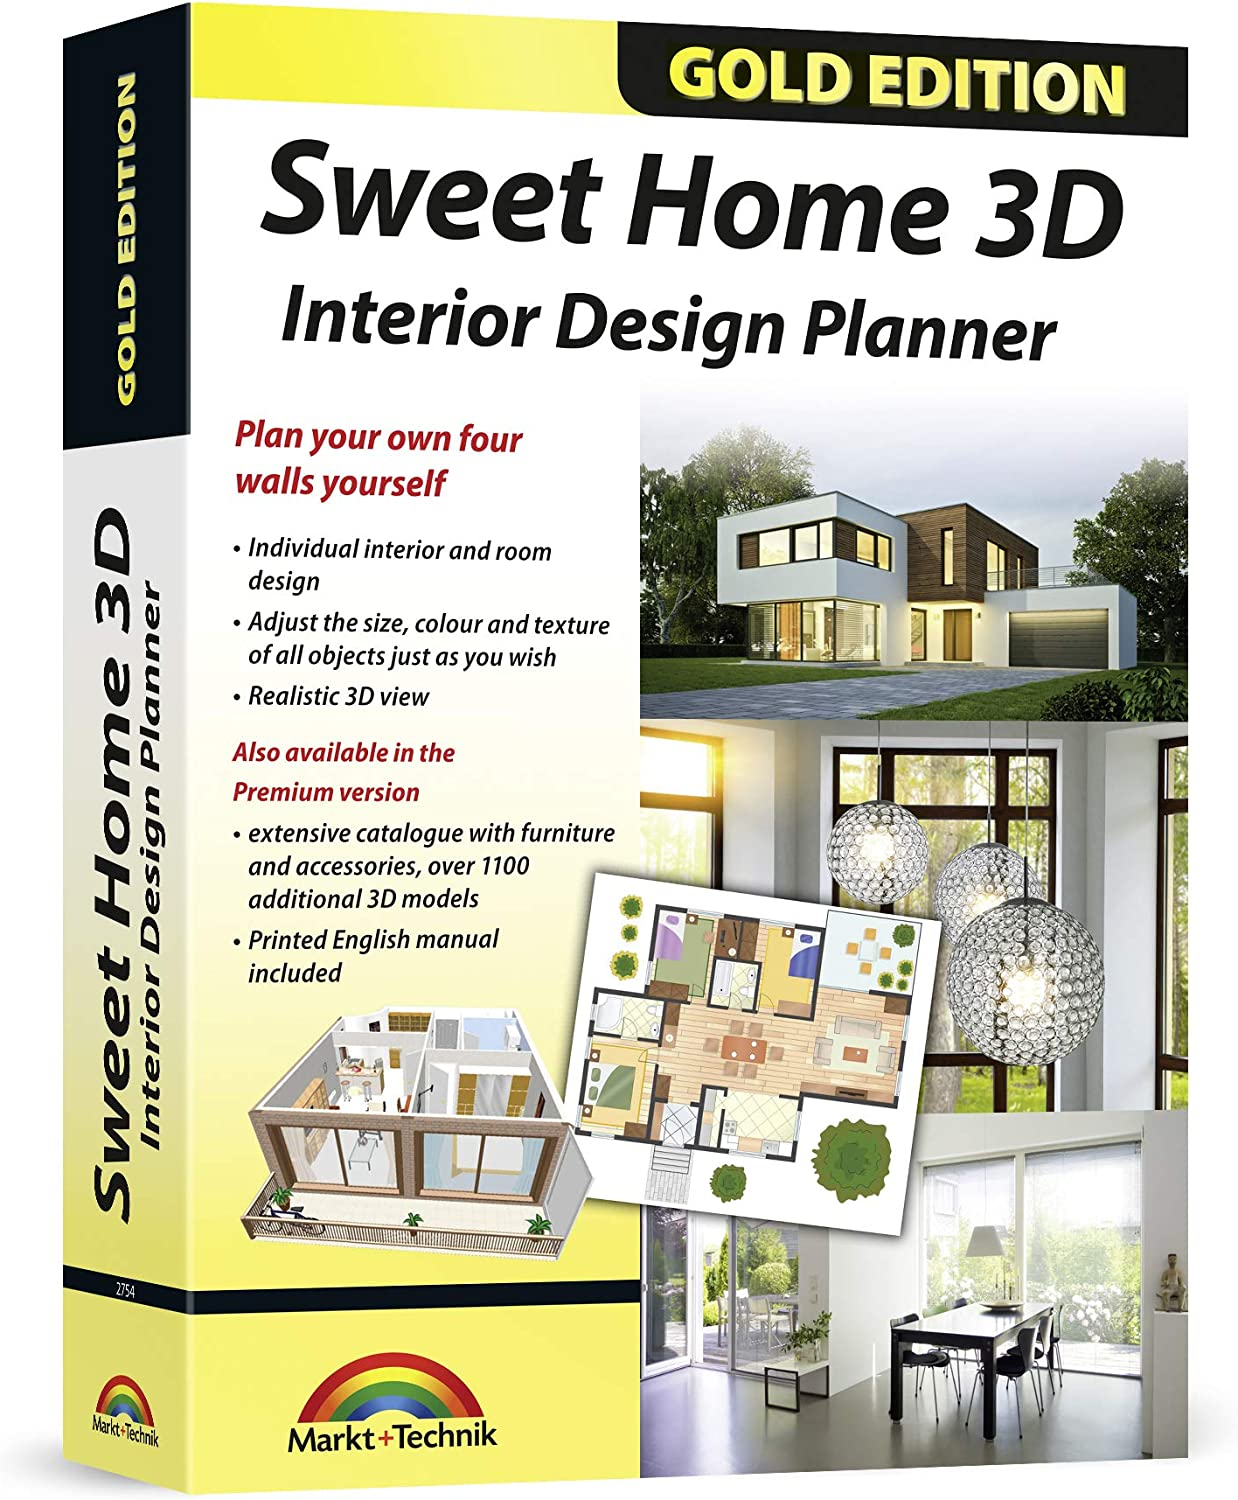 3959828233 Sweet Home 3D - Interior Design Planner with an additional 1100 3D models and a printed manual, ideal for architects and planners - for Windows 10-8-7-Vista-XP & MAC 8160dFIbOGL